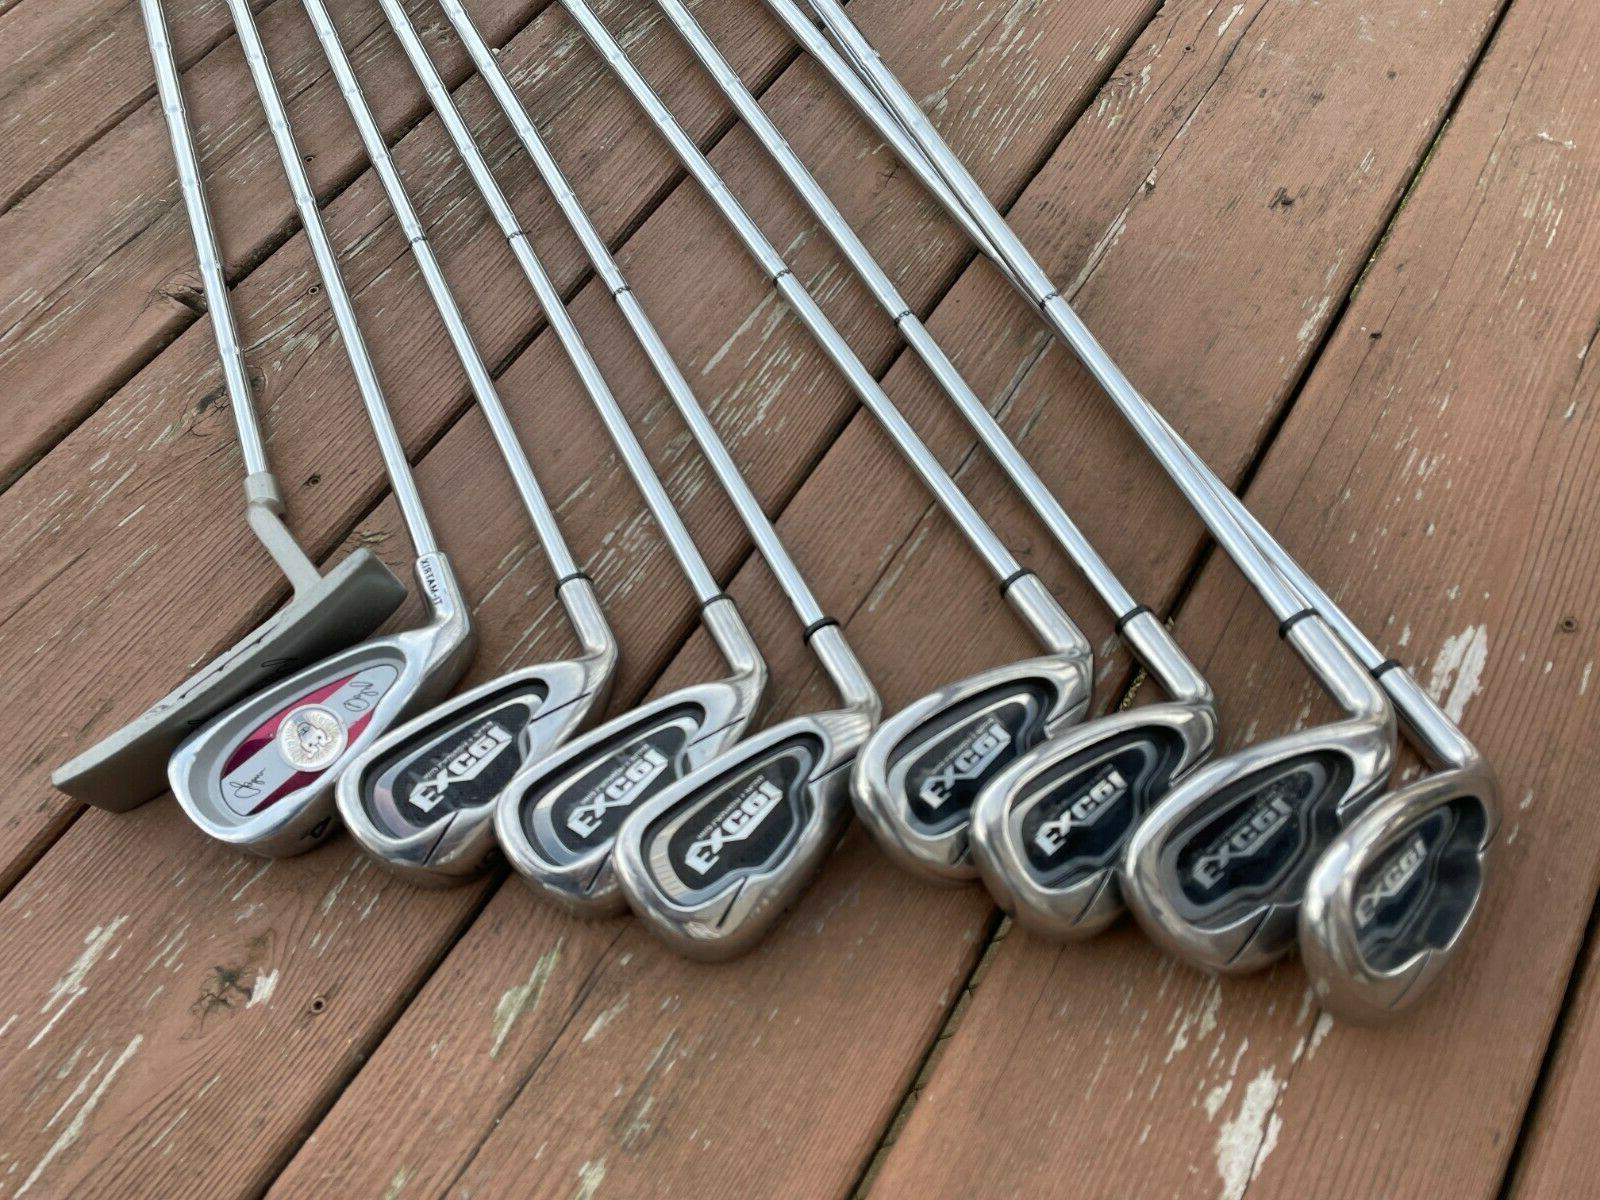 Pinemeadow Excel 5-PW,SW + Daly Iron & Putter Steel